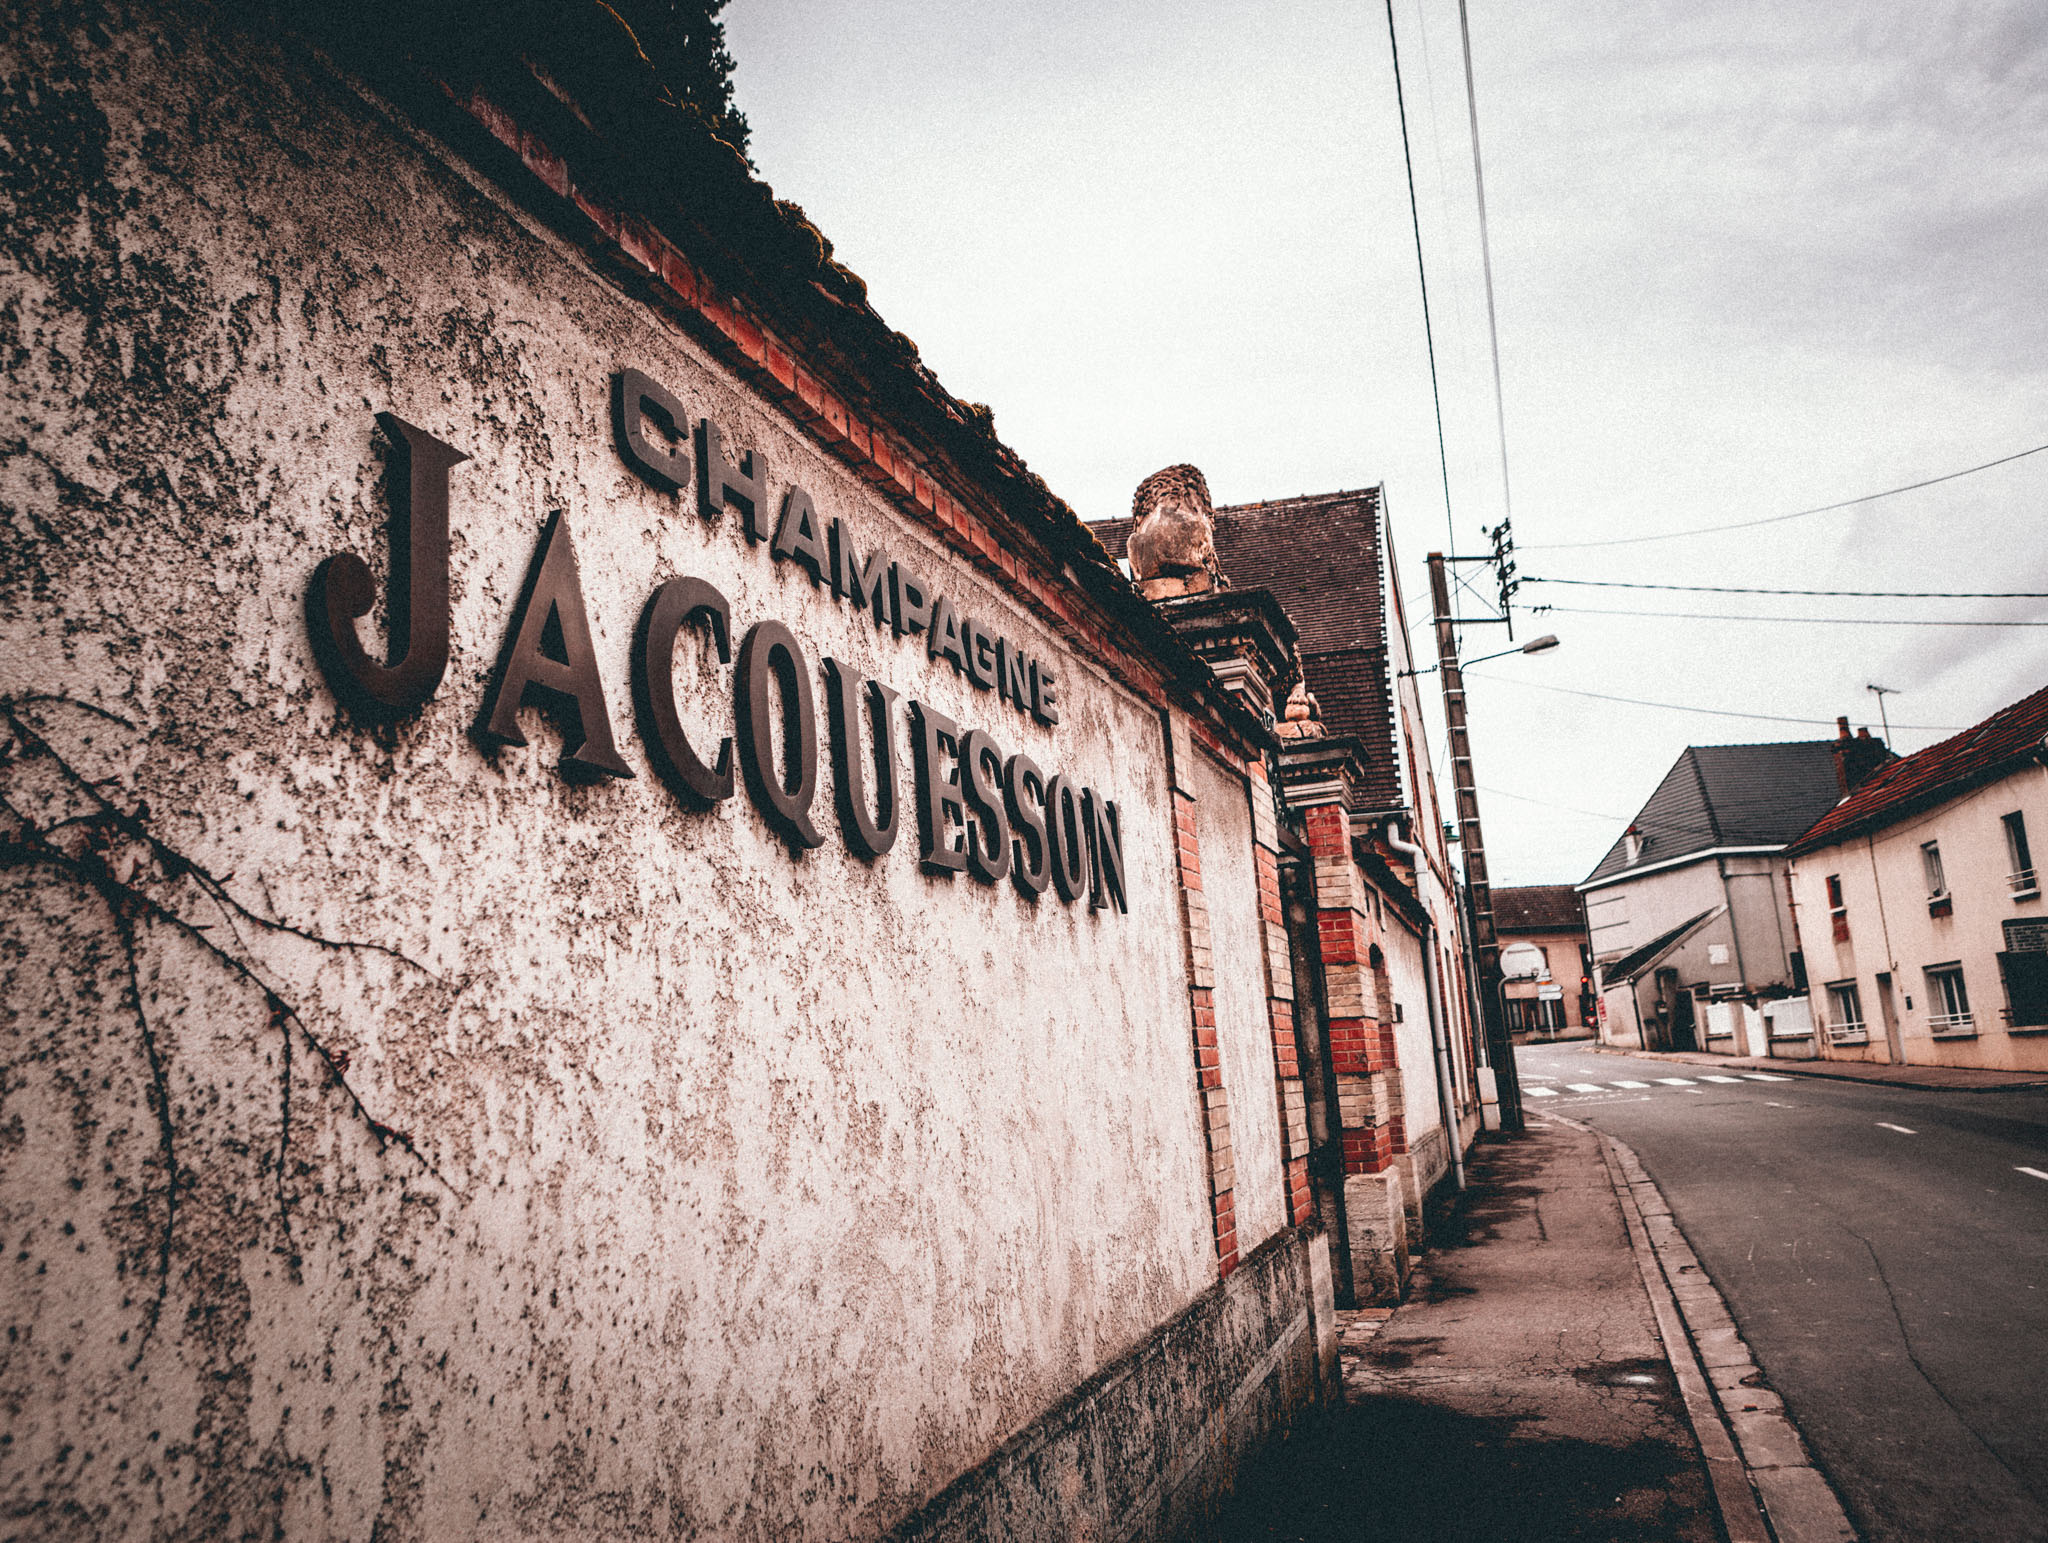 France : Champagne : Jacquesson in Dizy